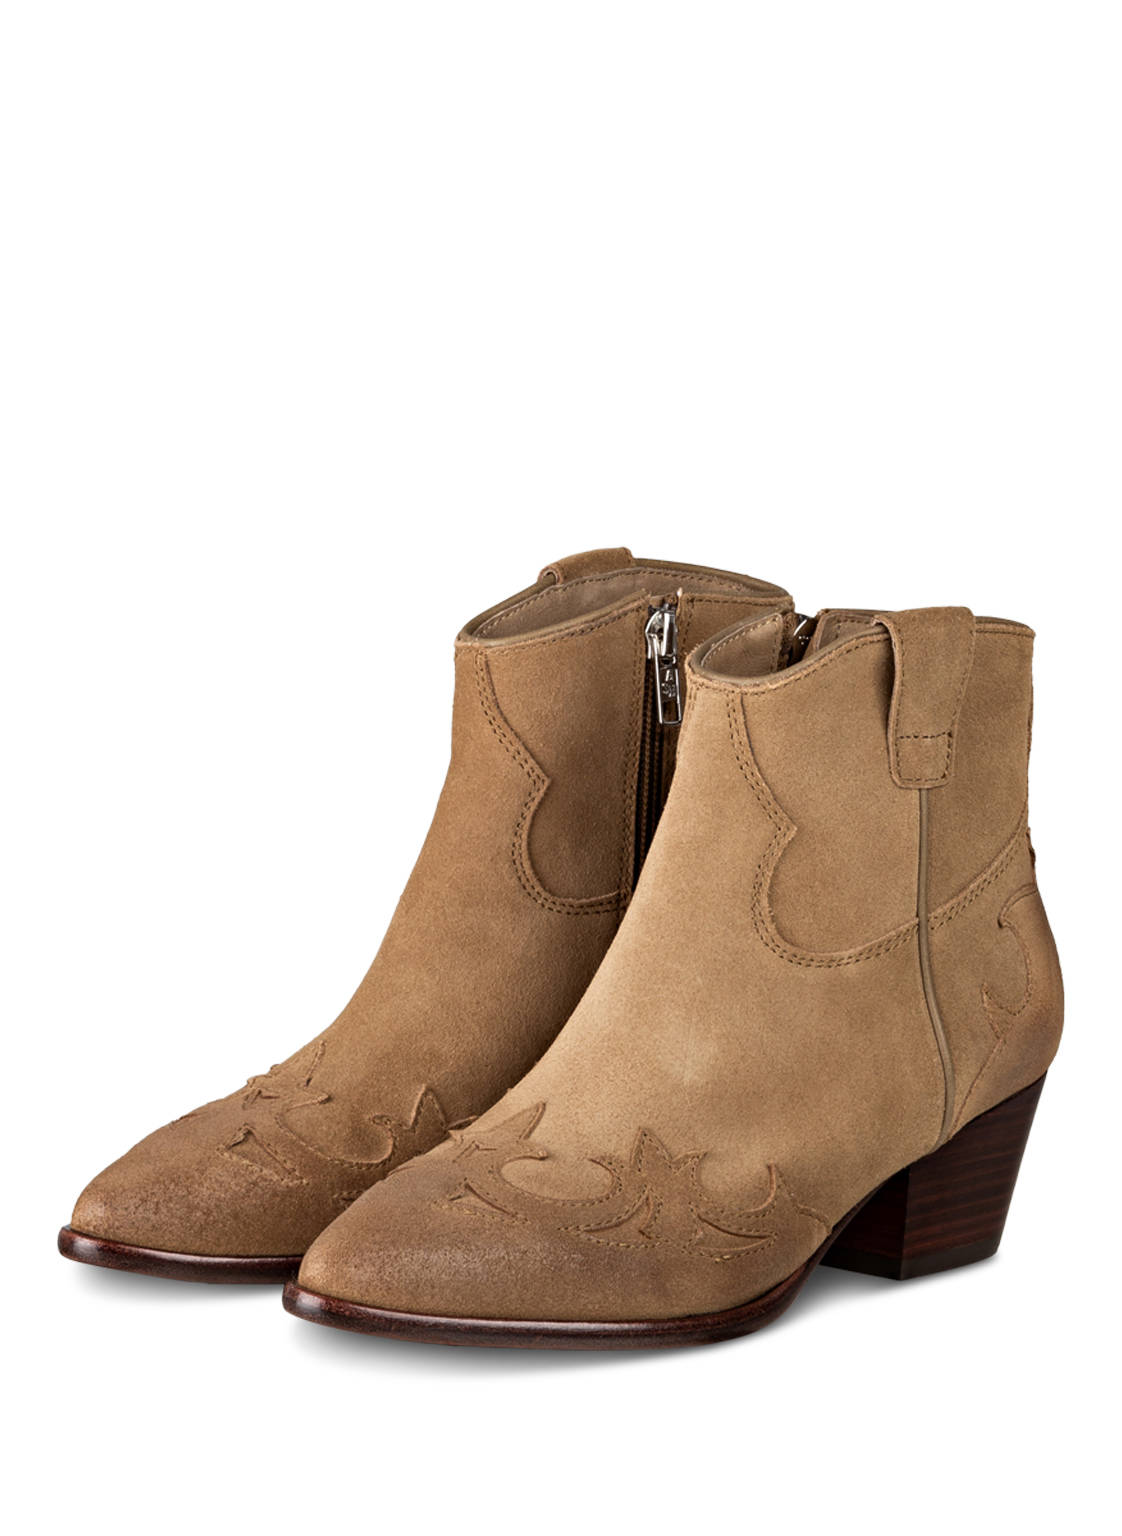 Image of Ash Cowboy Boots Harlow beige